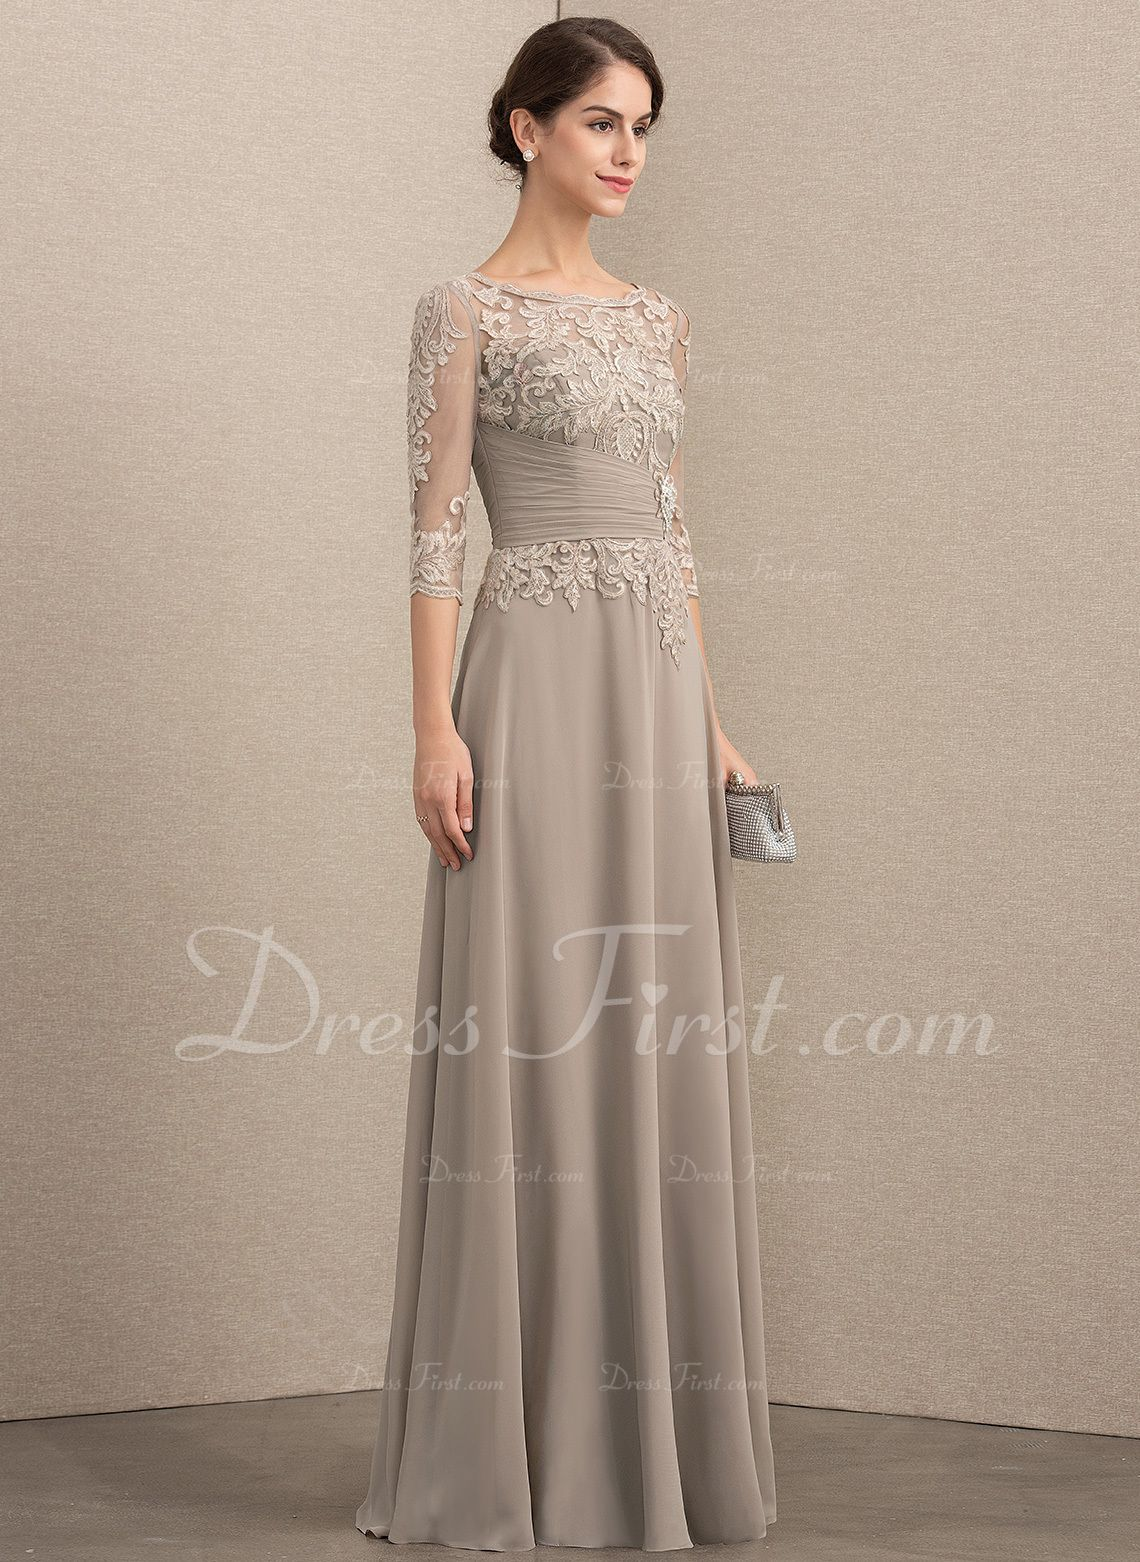 488a1611536 A-Line Princess Scoop Neck Floor-Length Chiffon Lace Mother of the Bride  Dress With Crystal Brooch Sequins (008164108) - Mother of the Bride Dresses  - ...